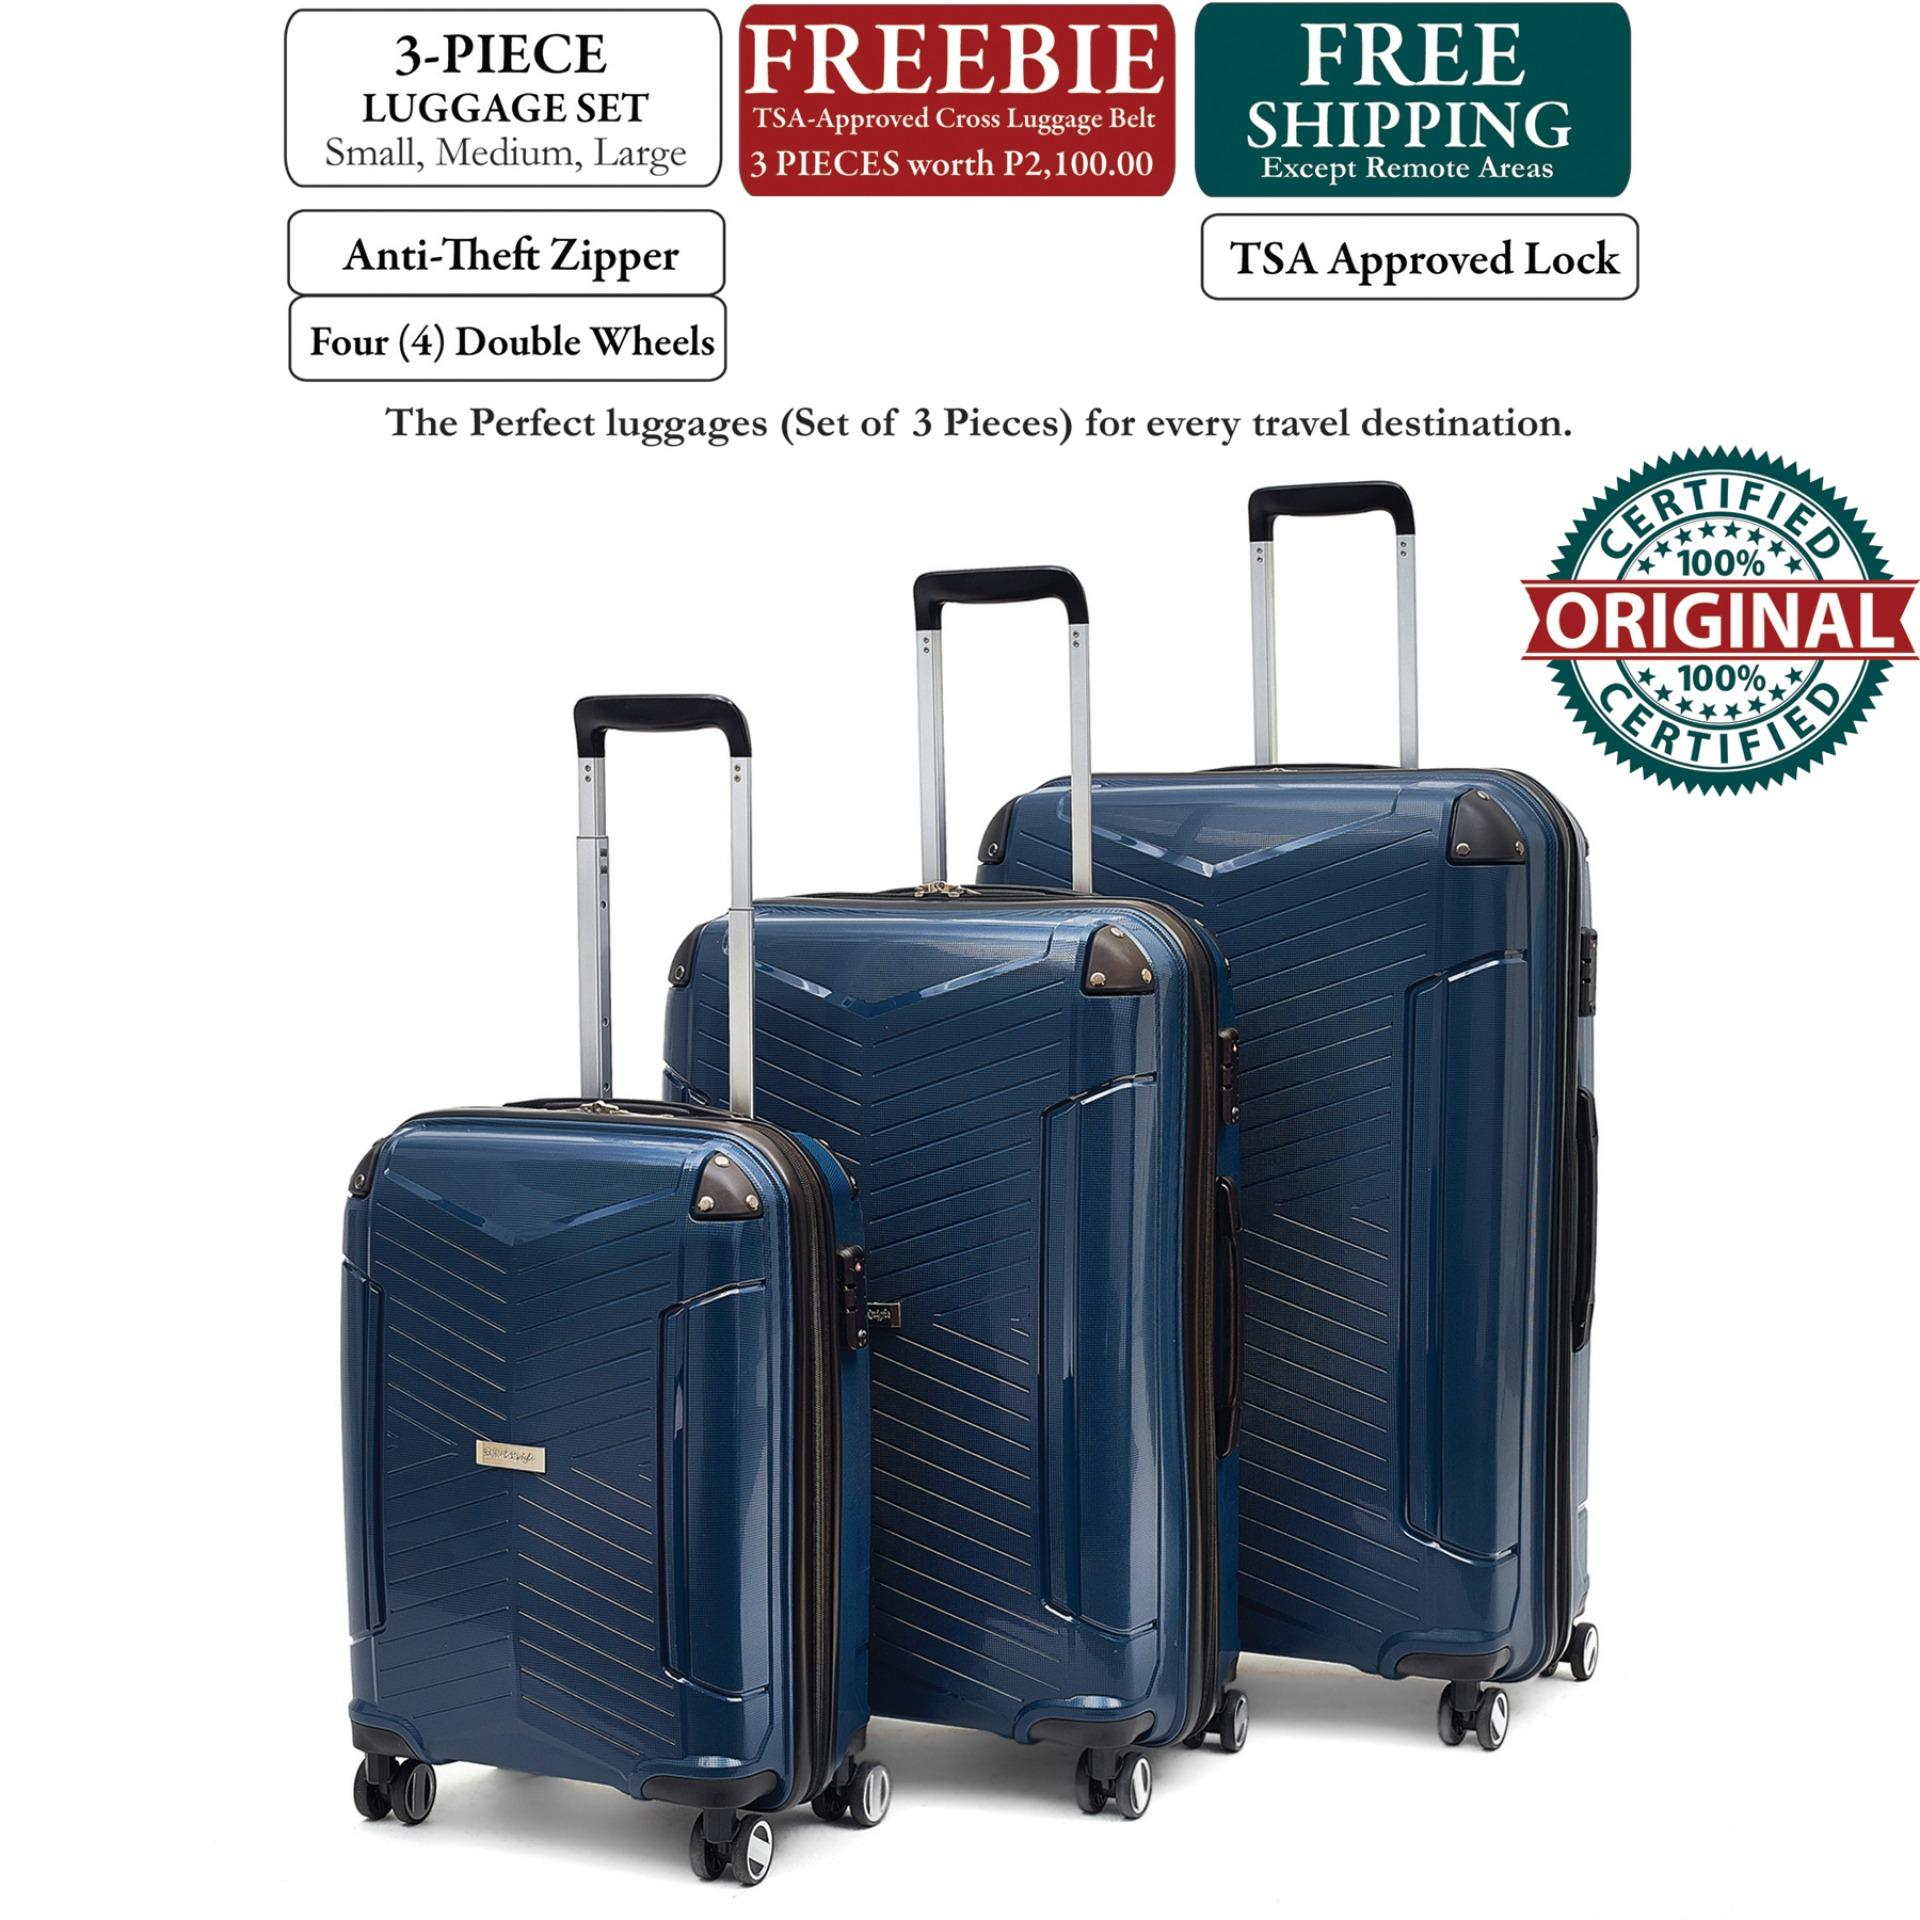 0f397973d053 British Knight BIP953ZT Navy Blue 3-Piece (Set) Luggage with TSA Lock,  Anti-Theft Zipper (3PCS FREE TSA CROSS LUGGAGE BELT)